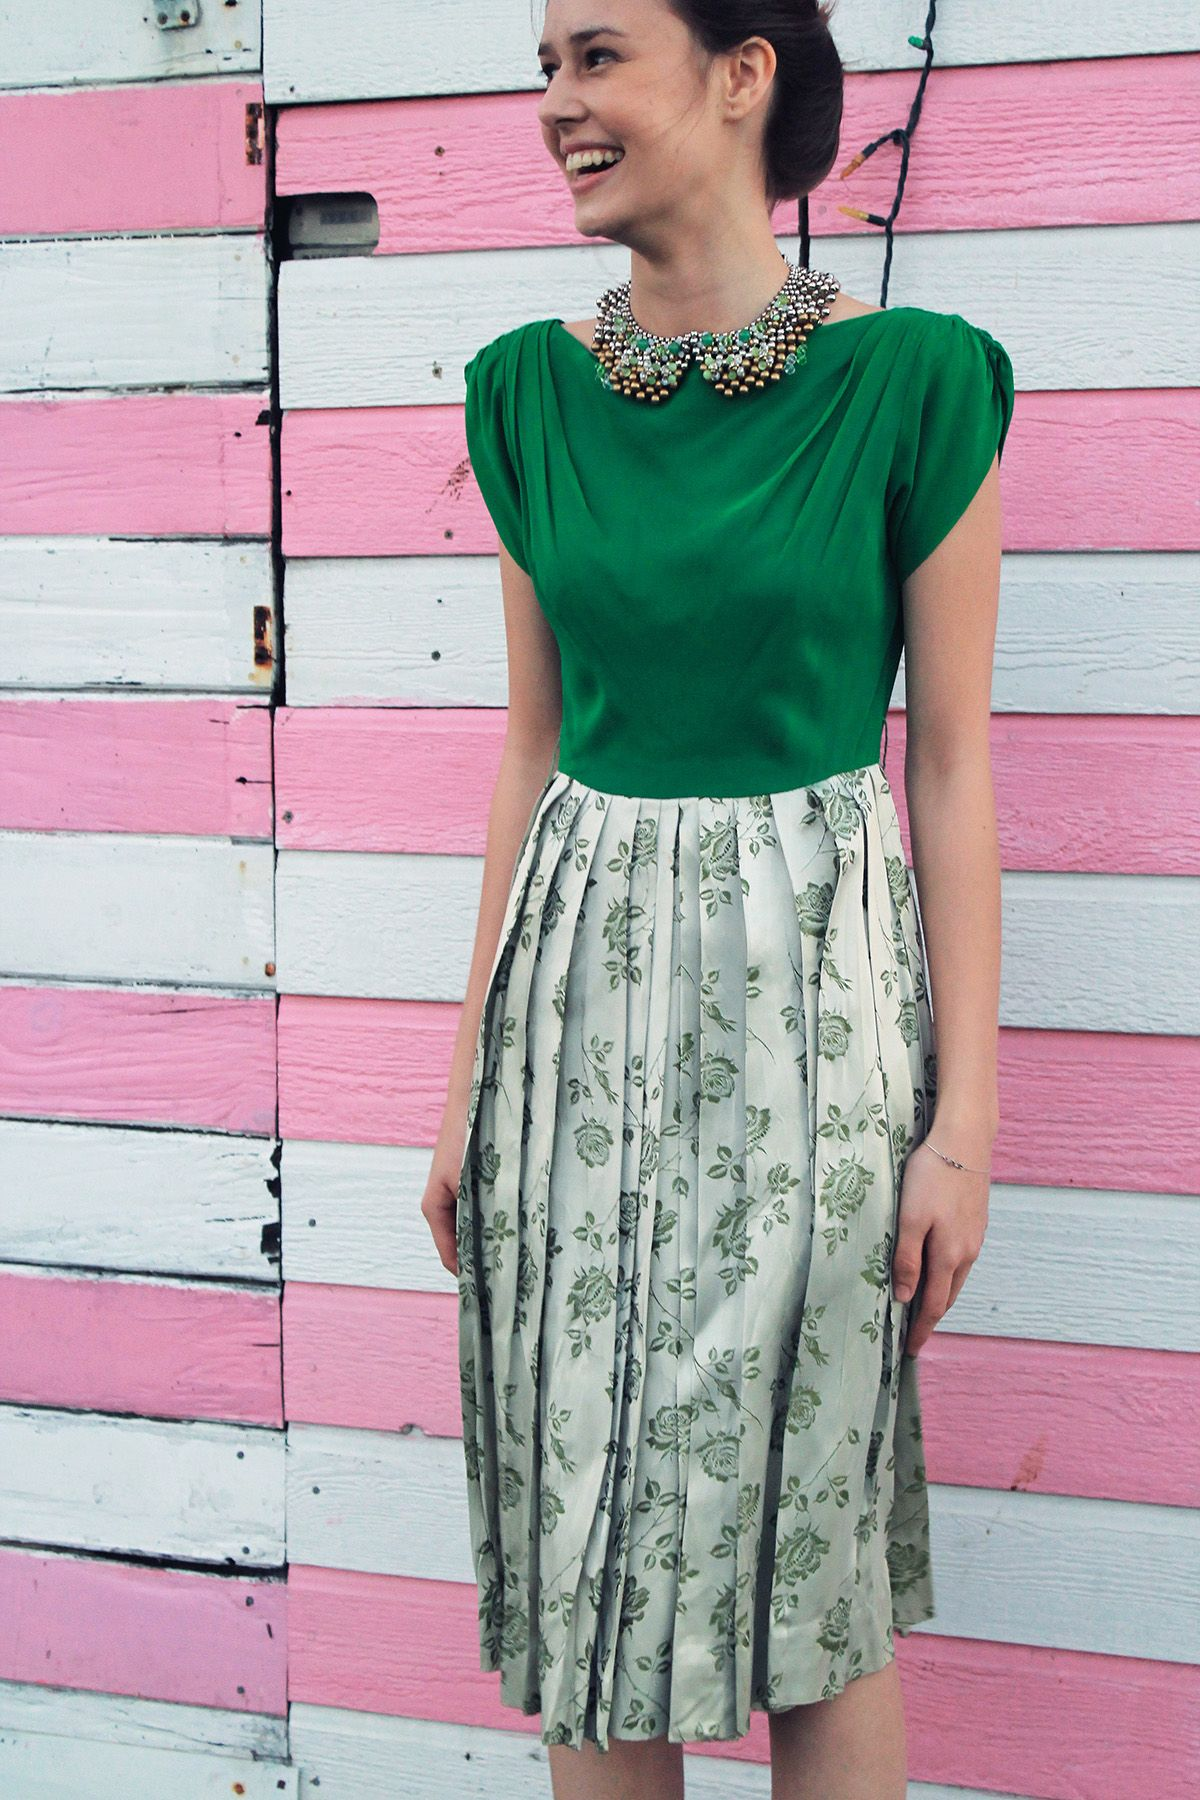 Kelly green and floral vintage dress. Classy!